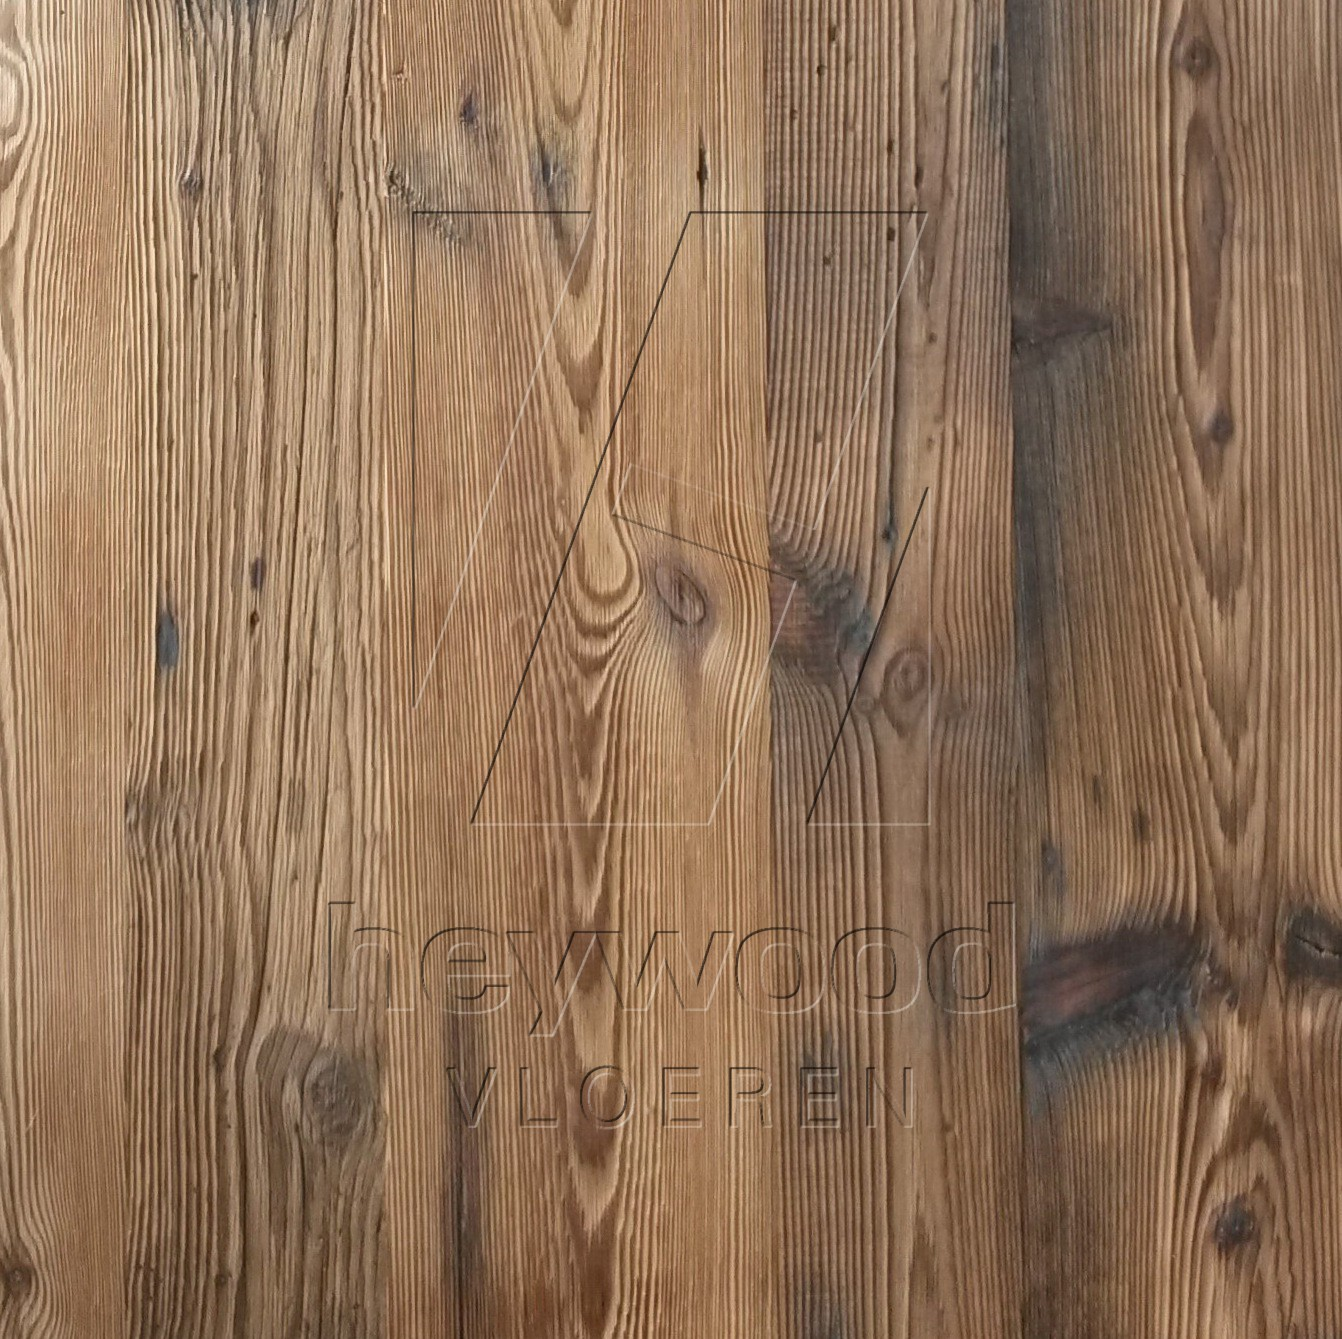 Carinthia Barnwood Plank (mixed widths, 80 years old Spruce, brushed outsides) in Plank OUTSIDES (authentic textured surface) of Old Reclaimed Wood